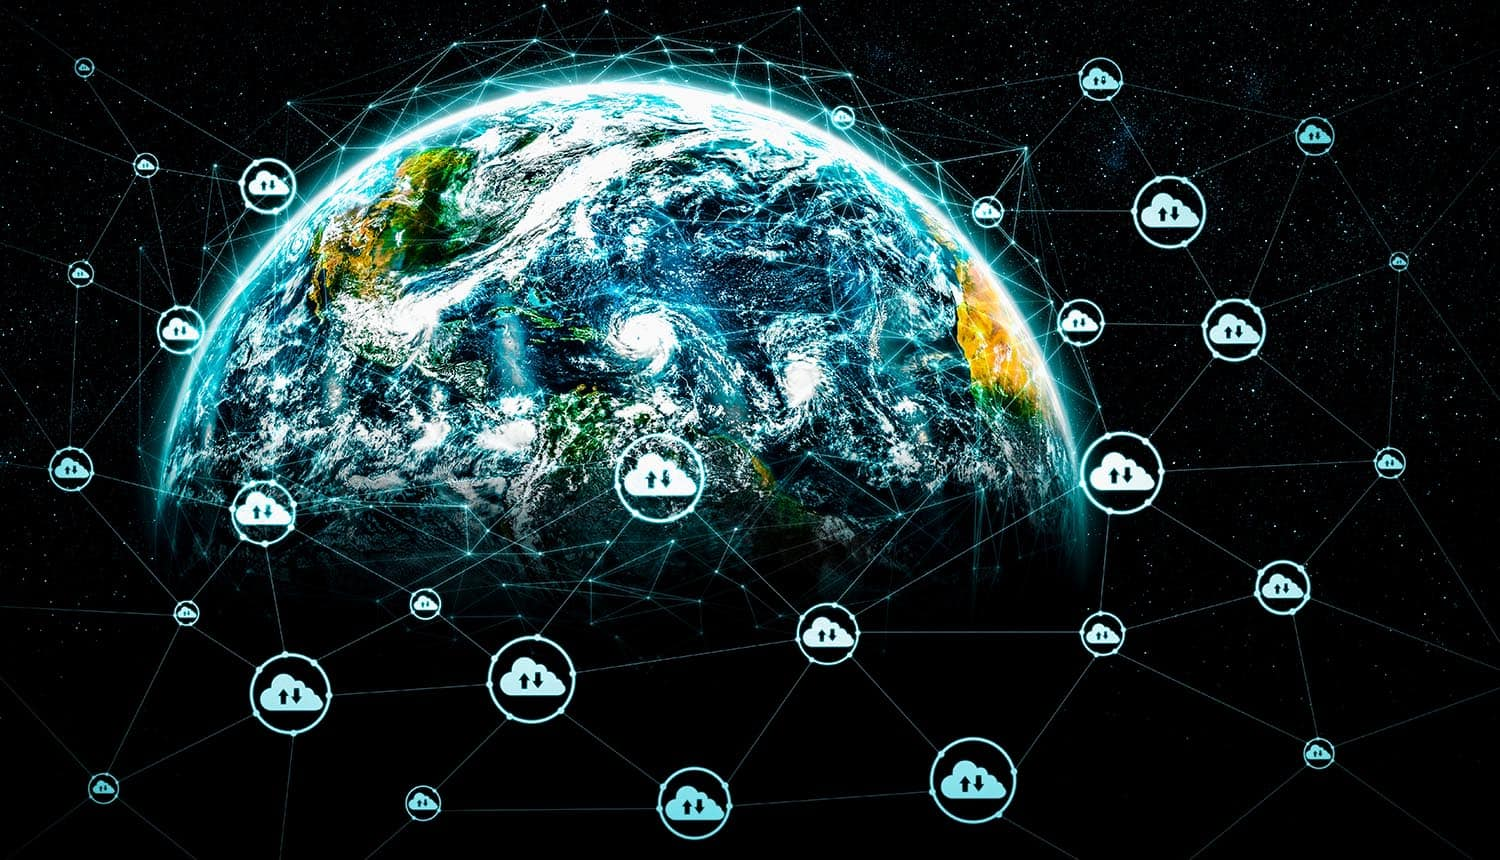 Cloud computing technology around the globe showing hybrid infrastructure and cloud security